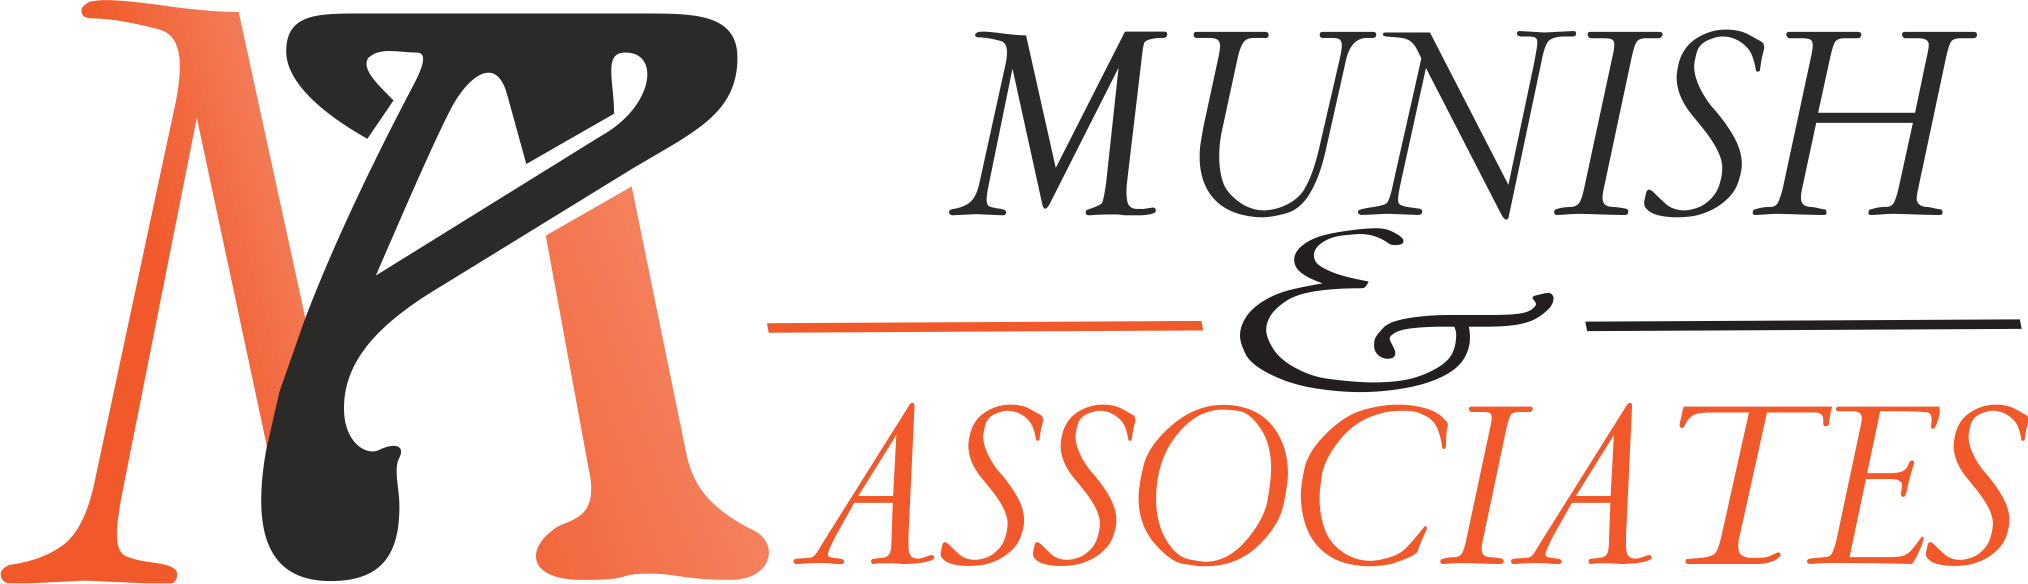 Munish and Associates